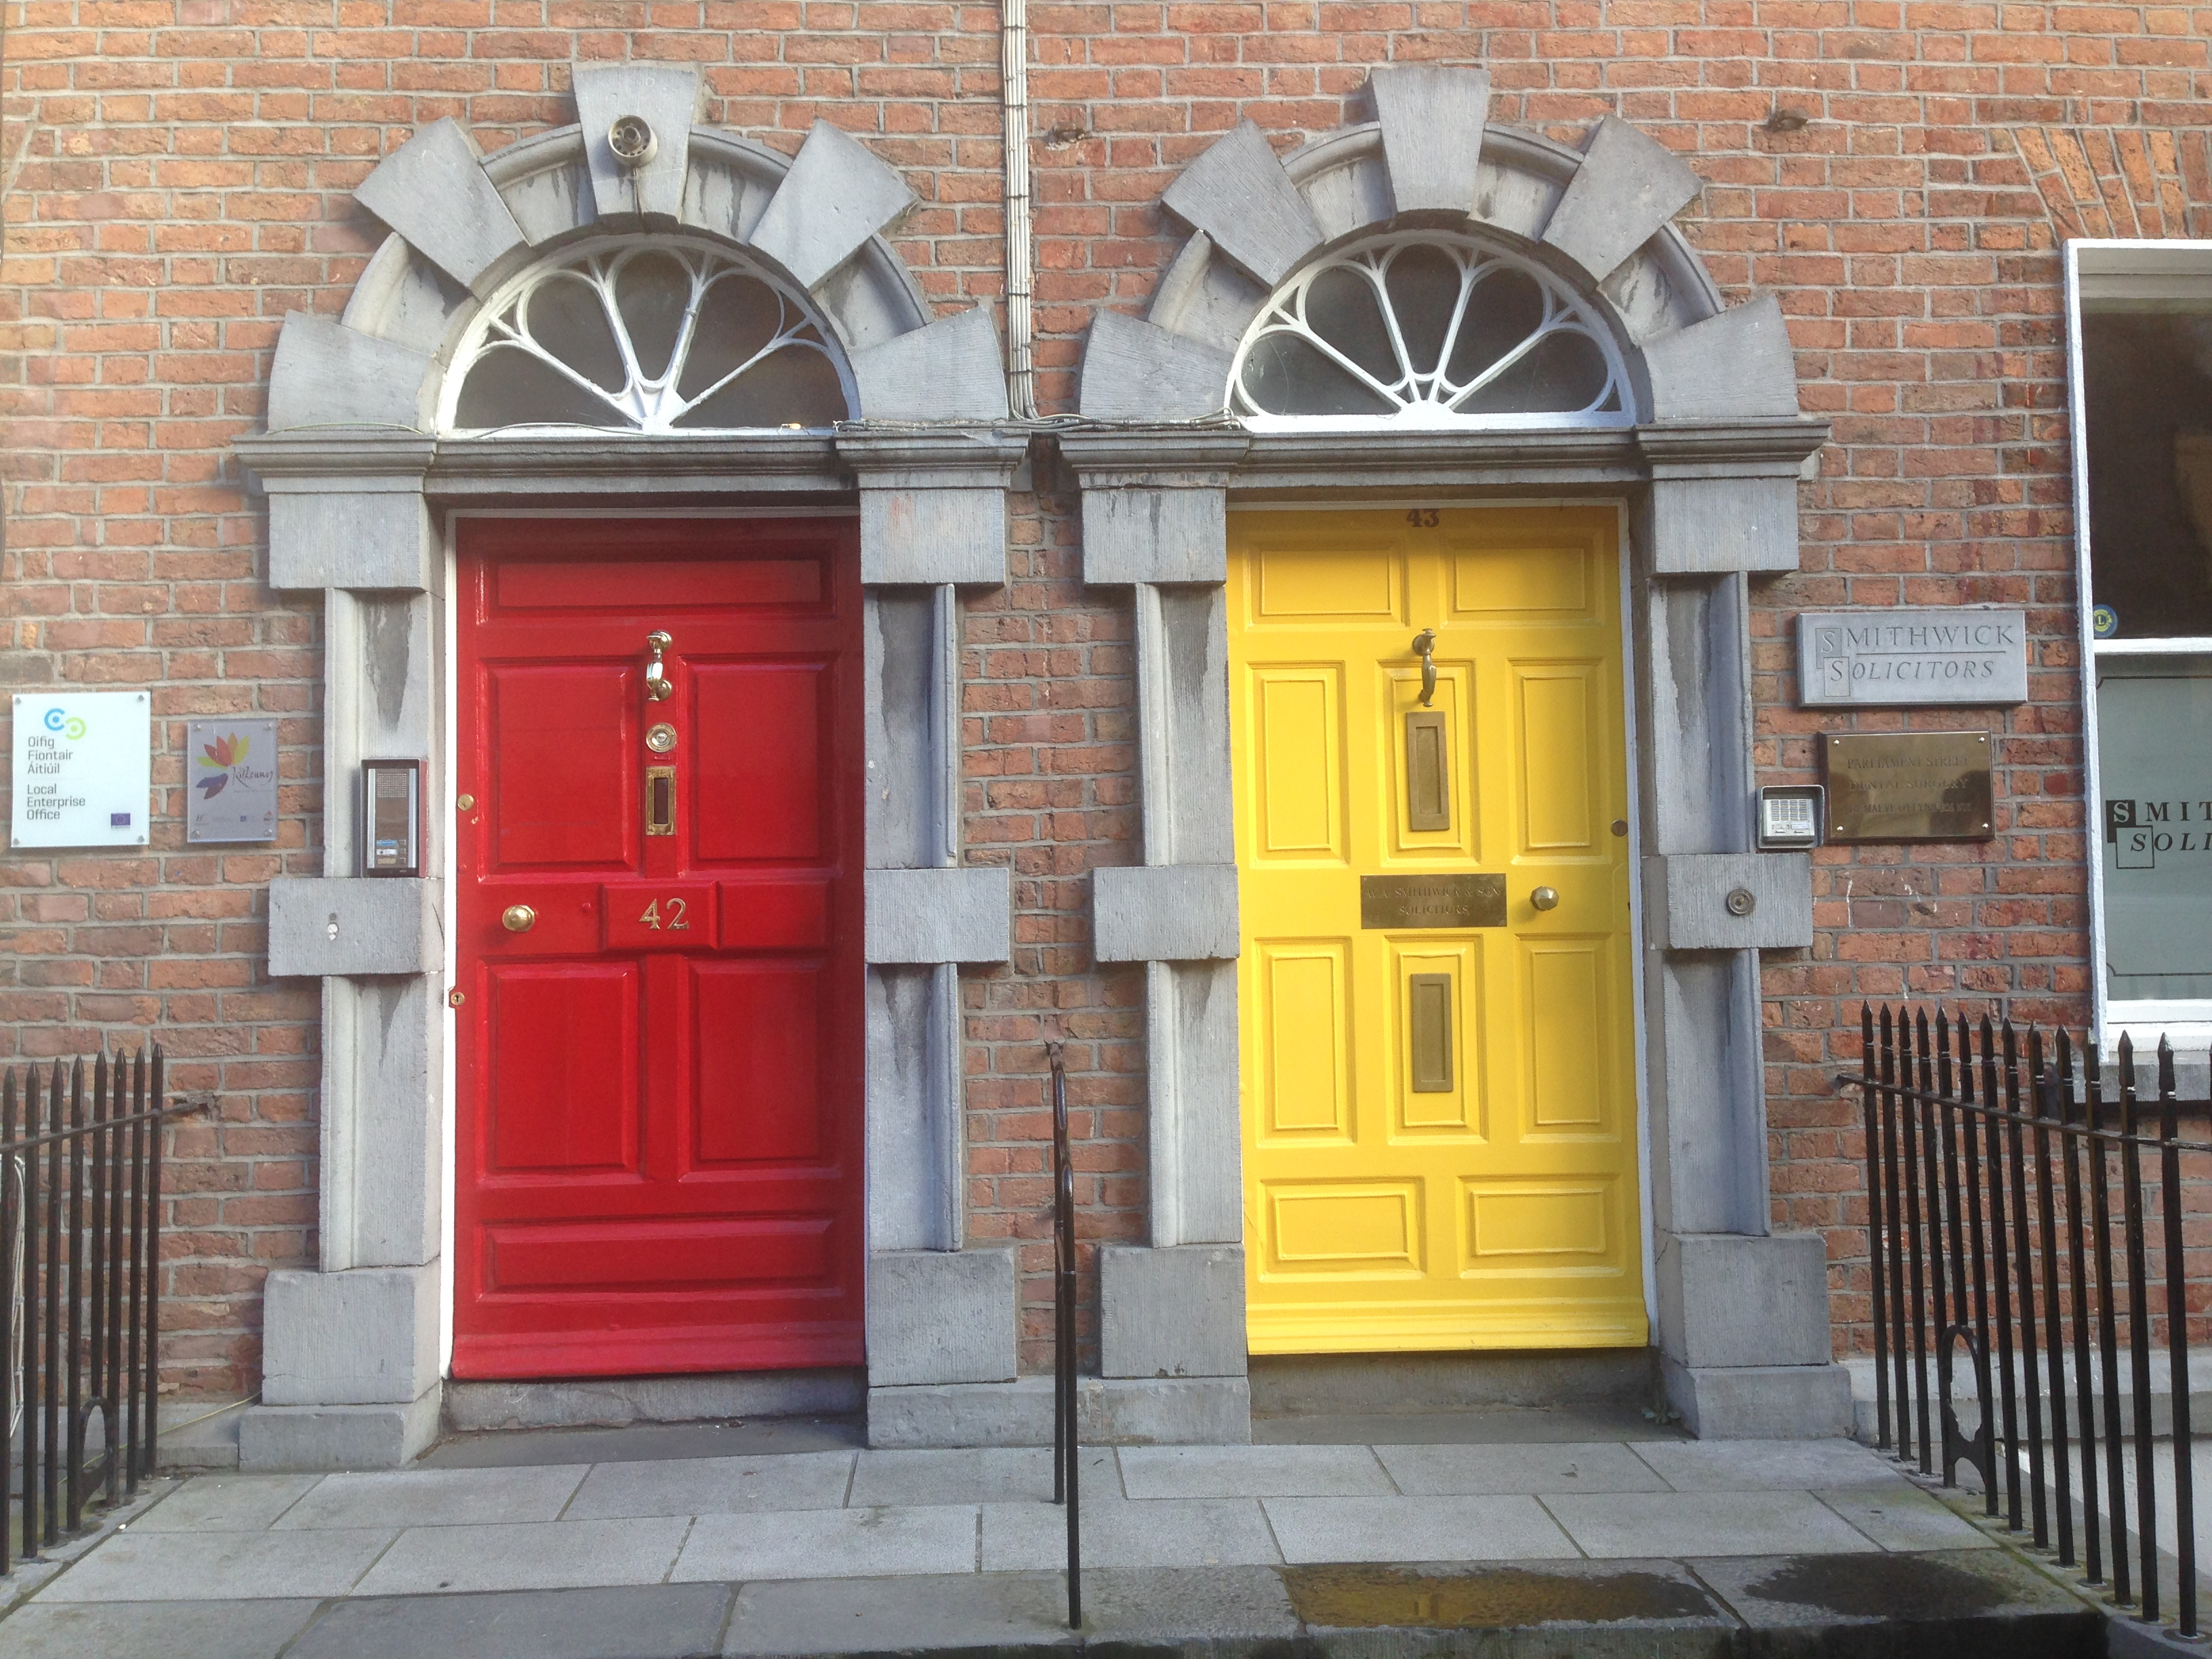 File2 Doors in Kilkenny IMG 4744.JPG & File:2 Doors in Kilkenny IMG 4744.JPG - Wikimedia Commons